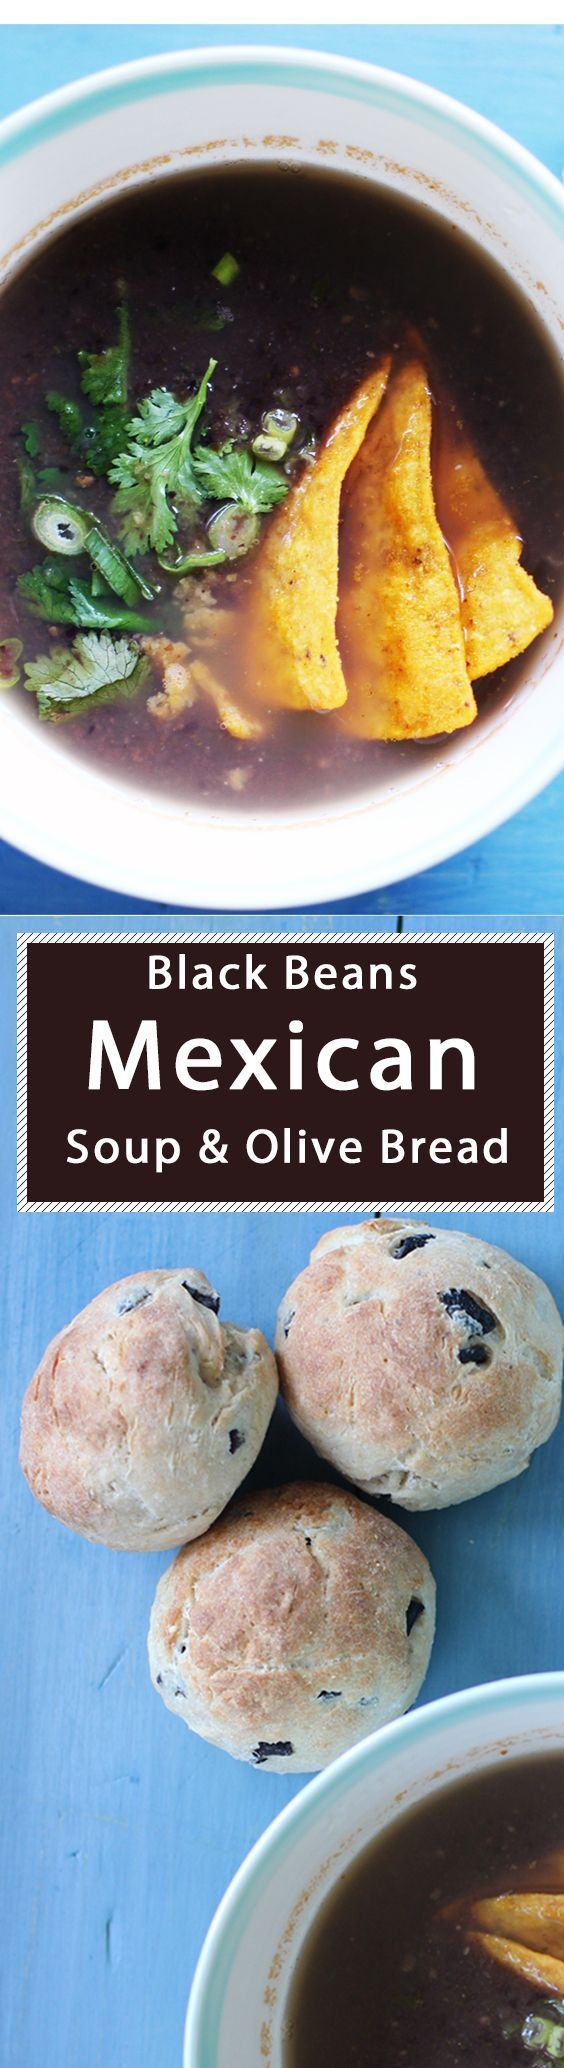 Black beans Mexican Soup  for summer  Serves 2-4 500ml (17fl oz) of water 400g (14 oz) of tin black beans, drained and rinsed.  250g (9 oz) of fresh prepared salsa ( see below for salsa ingredients ) 2 x spring onions (scallions) finely sliced.  handful of coriander (cilantro) finely chopped.  handful of tortilla chips, cut in to small long strips